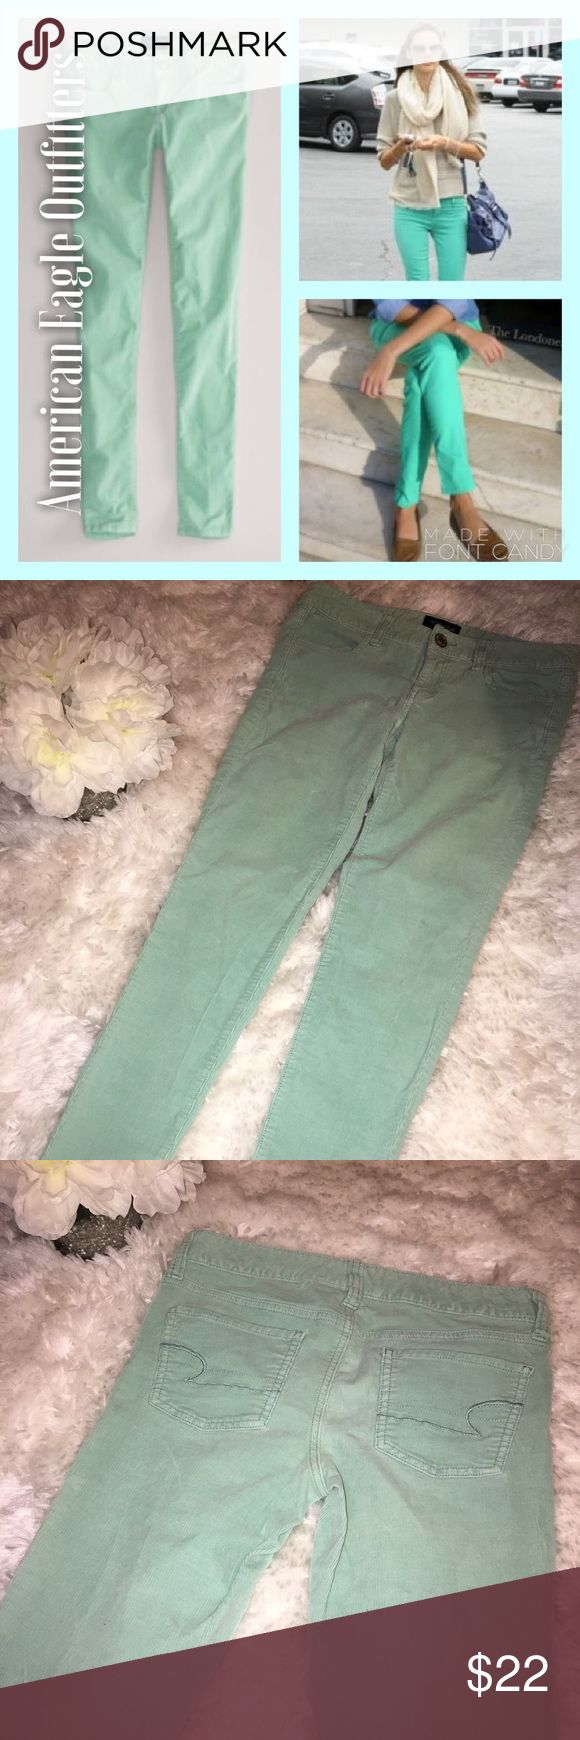 American Eagle 🦅 Outfitters Mint Green Cord Jeans American Eagle 🦅 Outfitters Mint Green Cord Jeans. Inseam 30. Perfect condition. No tears, rips, or stains. Can be dressed up or down. American Eagle Outfitters Pants